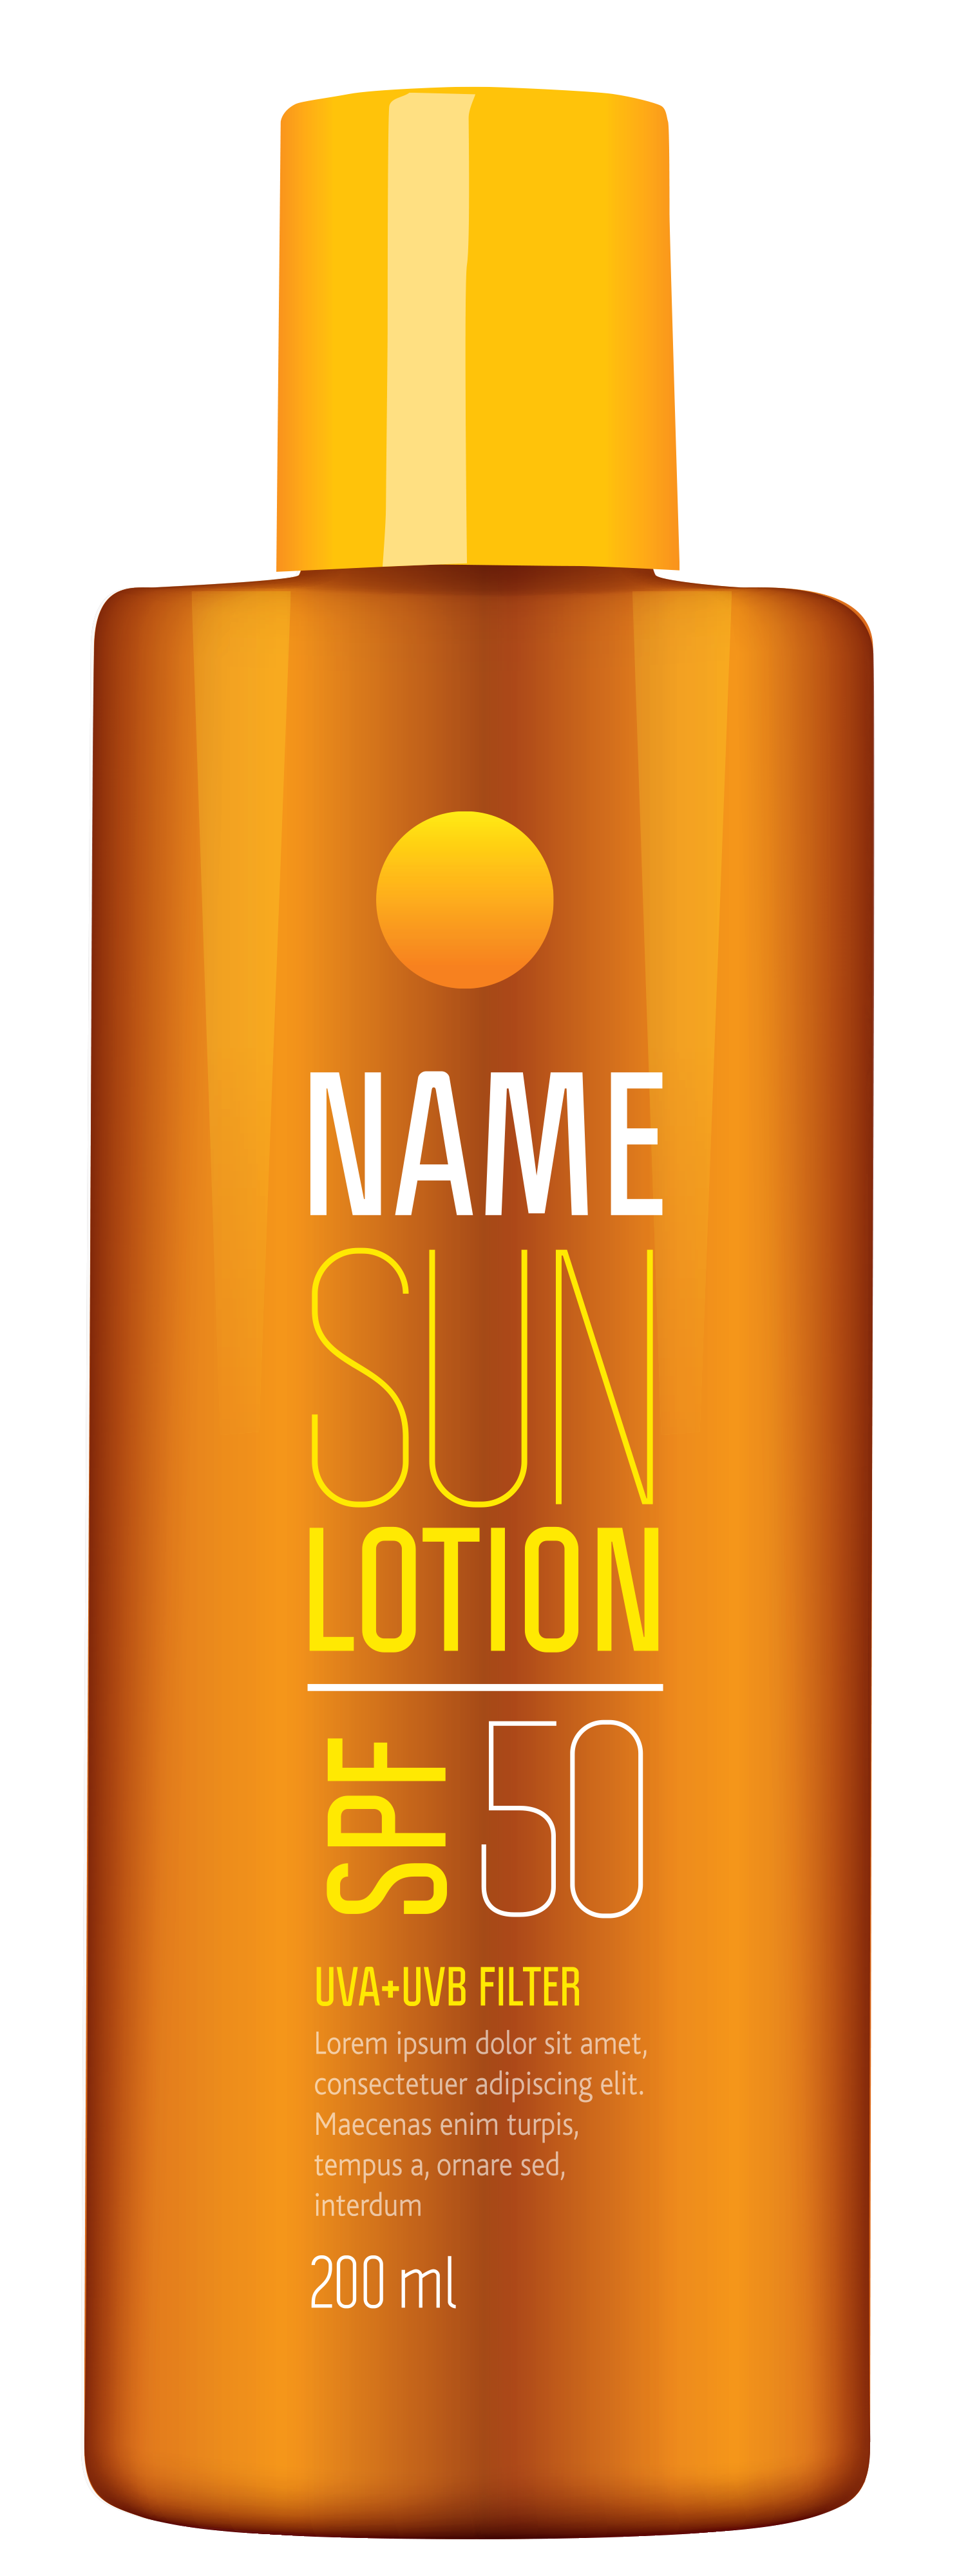 Sun drink clipart clip royalty free download Sun Lotion Tube PNG Clipart Picture | Gallery Yopriceville - High ... clip royalty free download